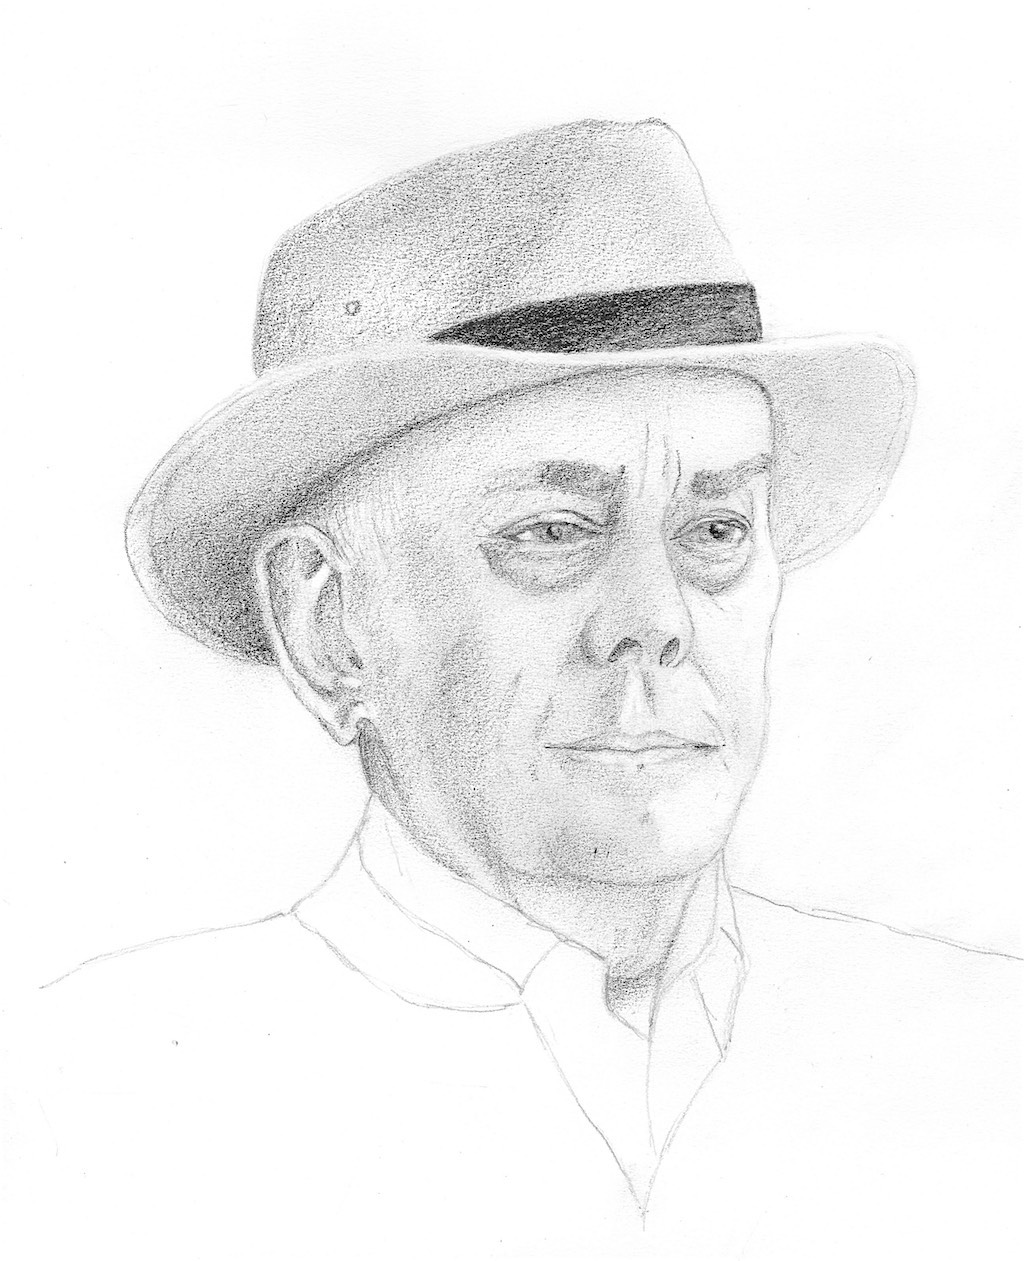 Sketch of Bryan in a hat